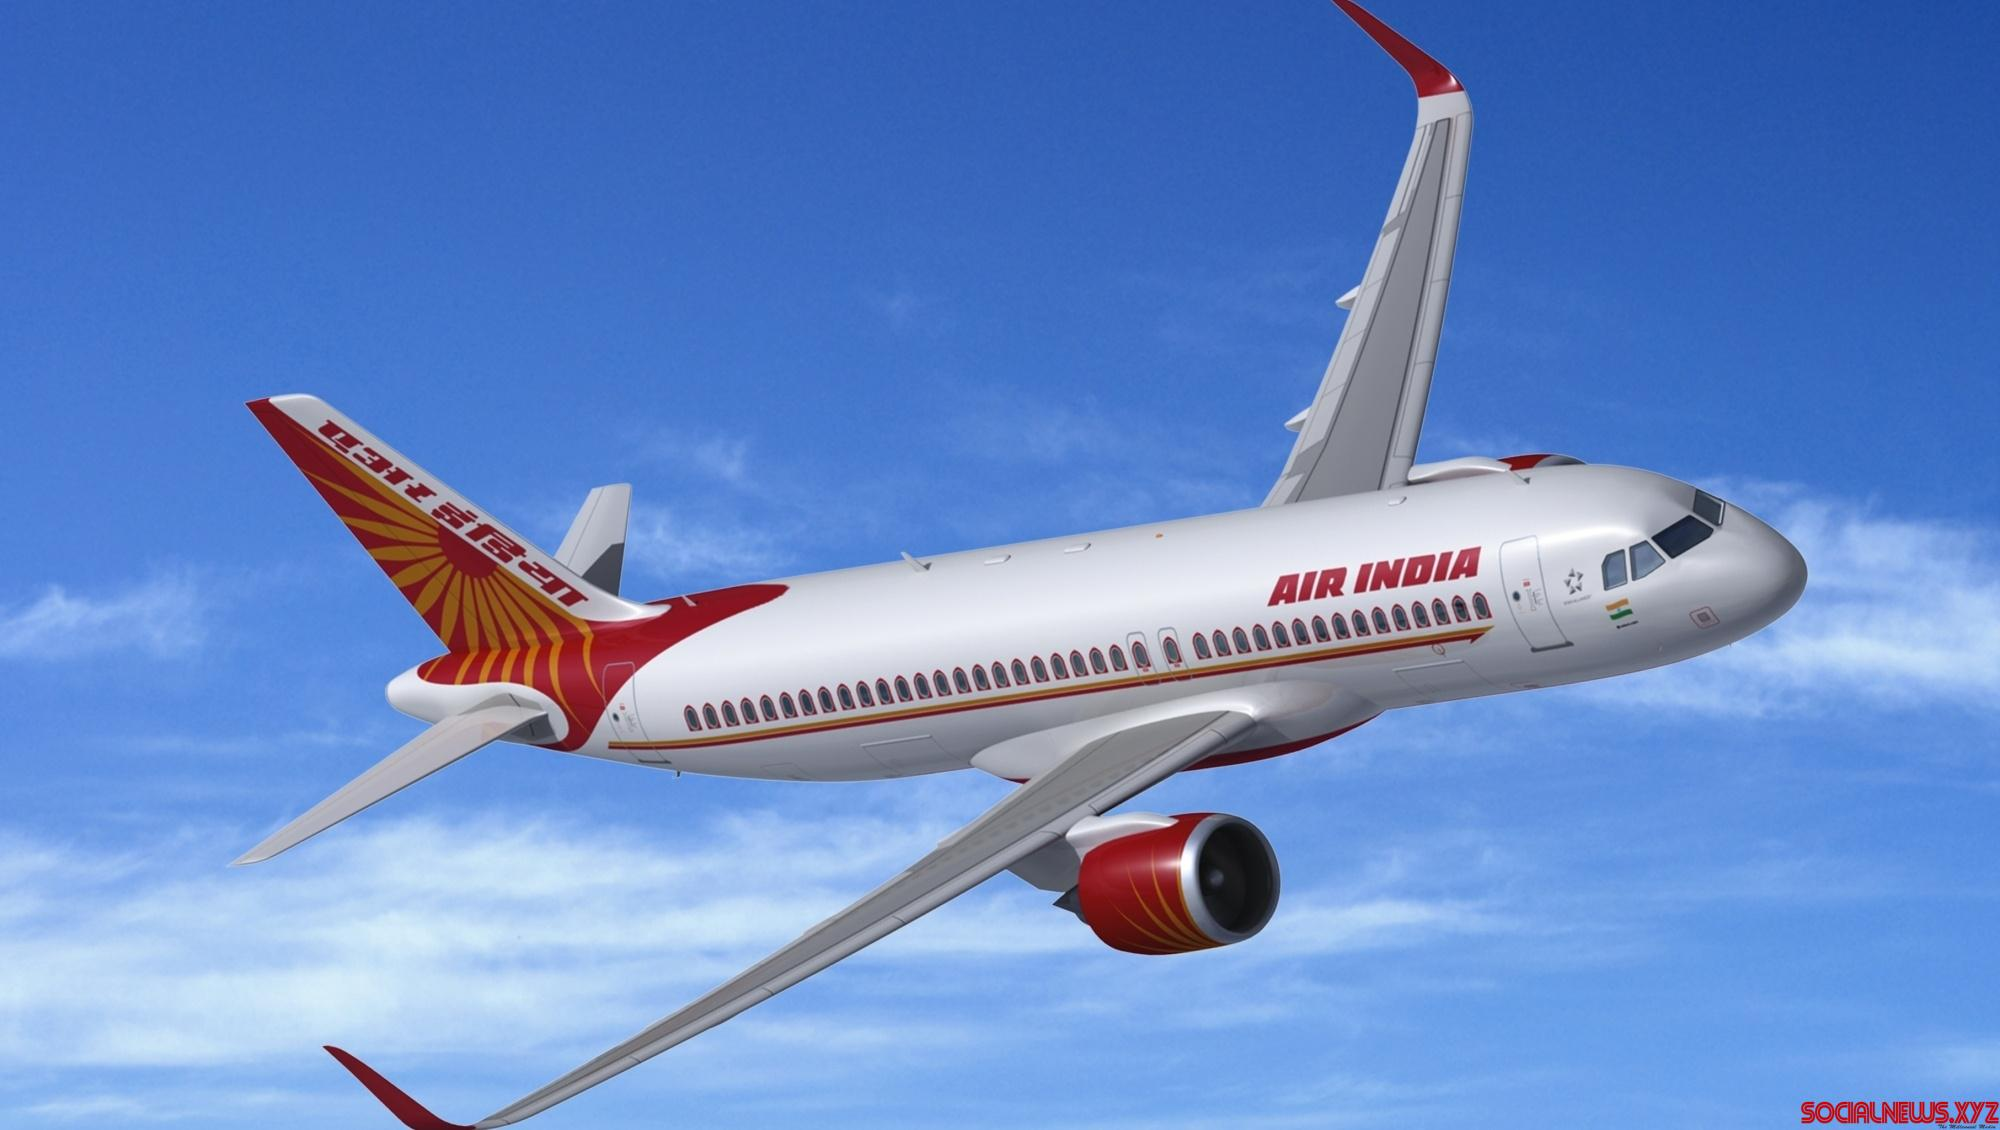 Air India losing 13 lakh/day on Pakistan air space closure: Puri